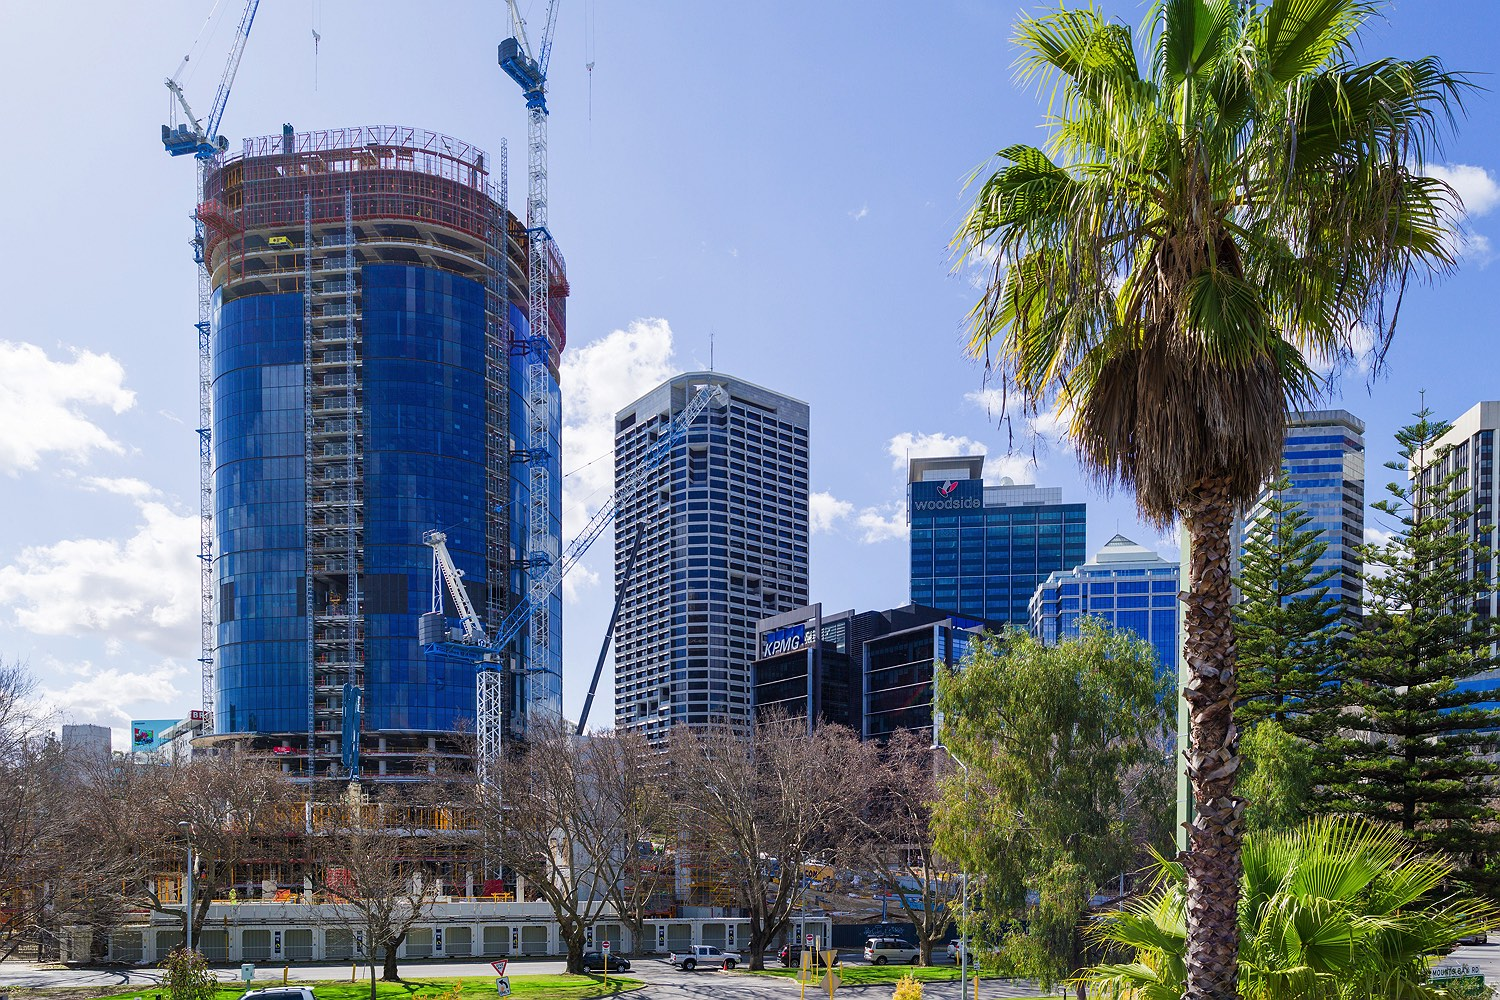 04-capital-square-perth-city-nearing-completion